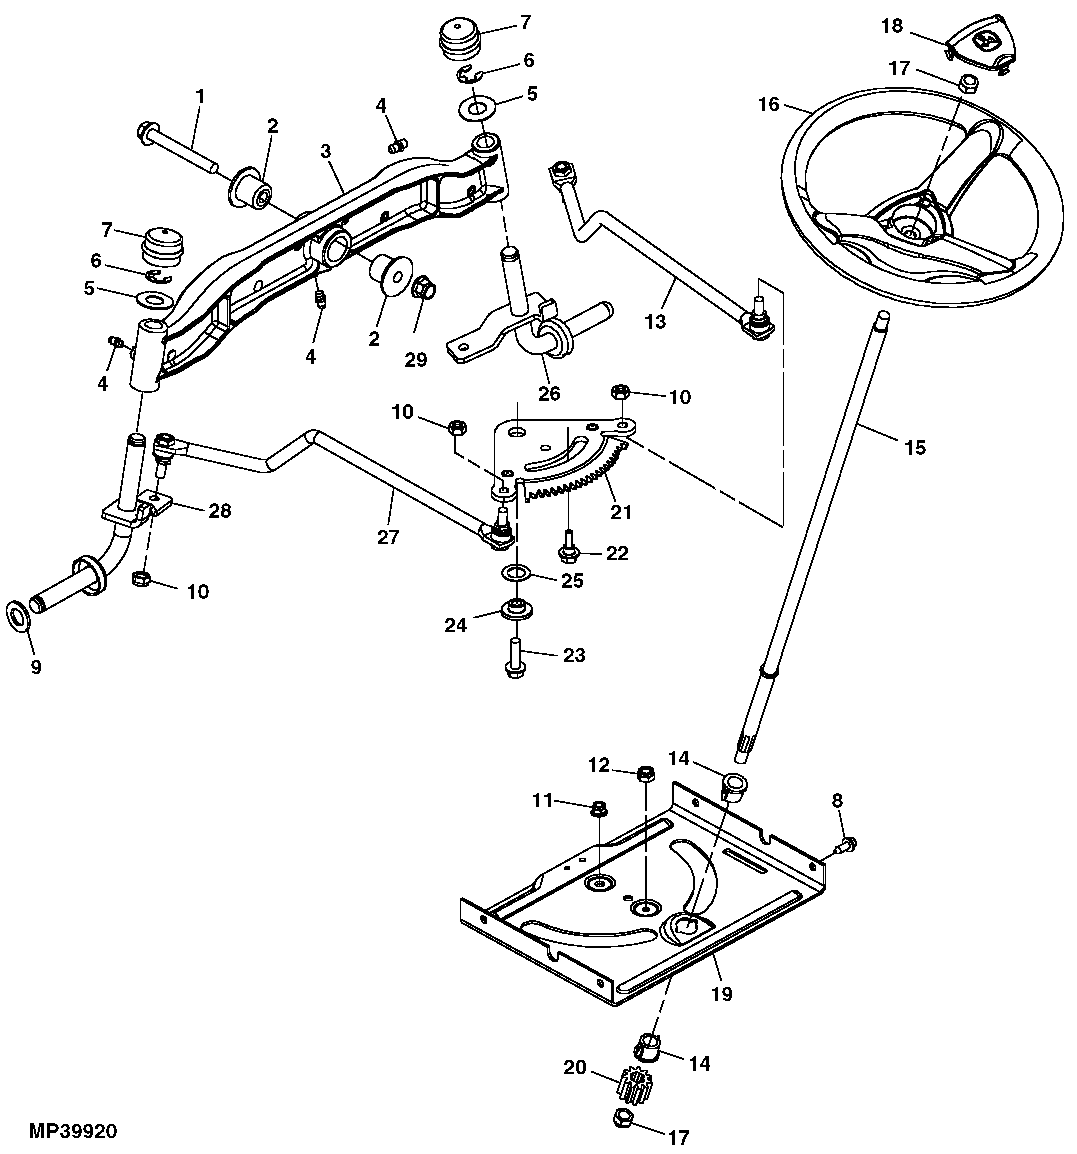 John Deere L120 Engine Diagram Wiring Library. 4wheel Steering Lawn Tractor X739 John Deere Us. John Deere. John Deere 160 Lawn Tractor Parts Diagram Rear Axile At Scoala.co